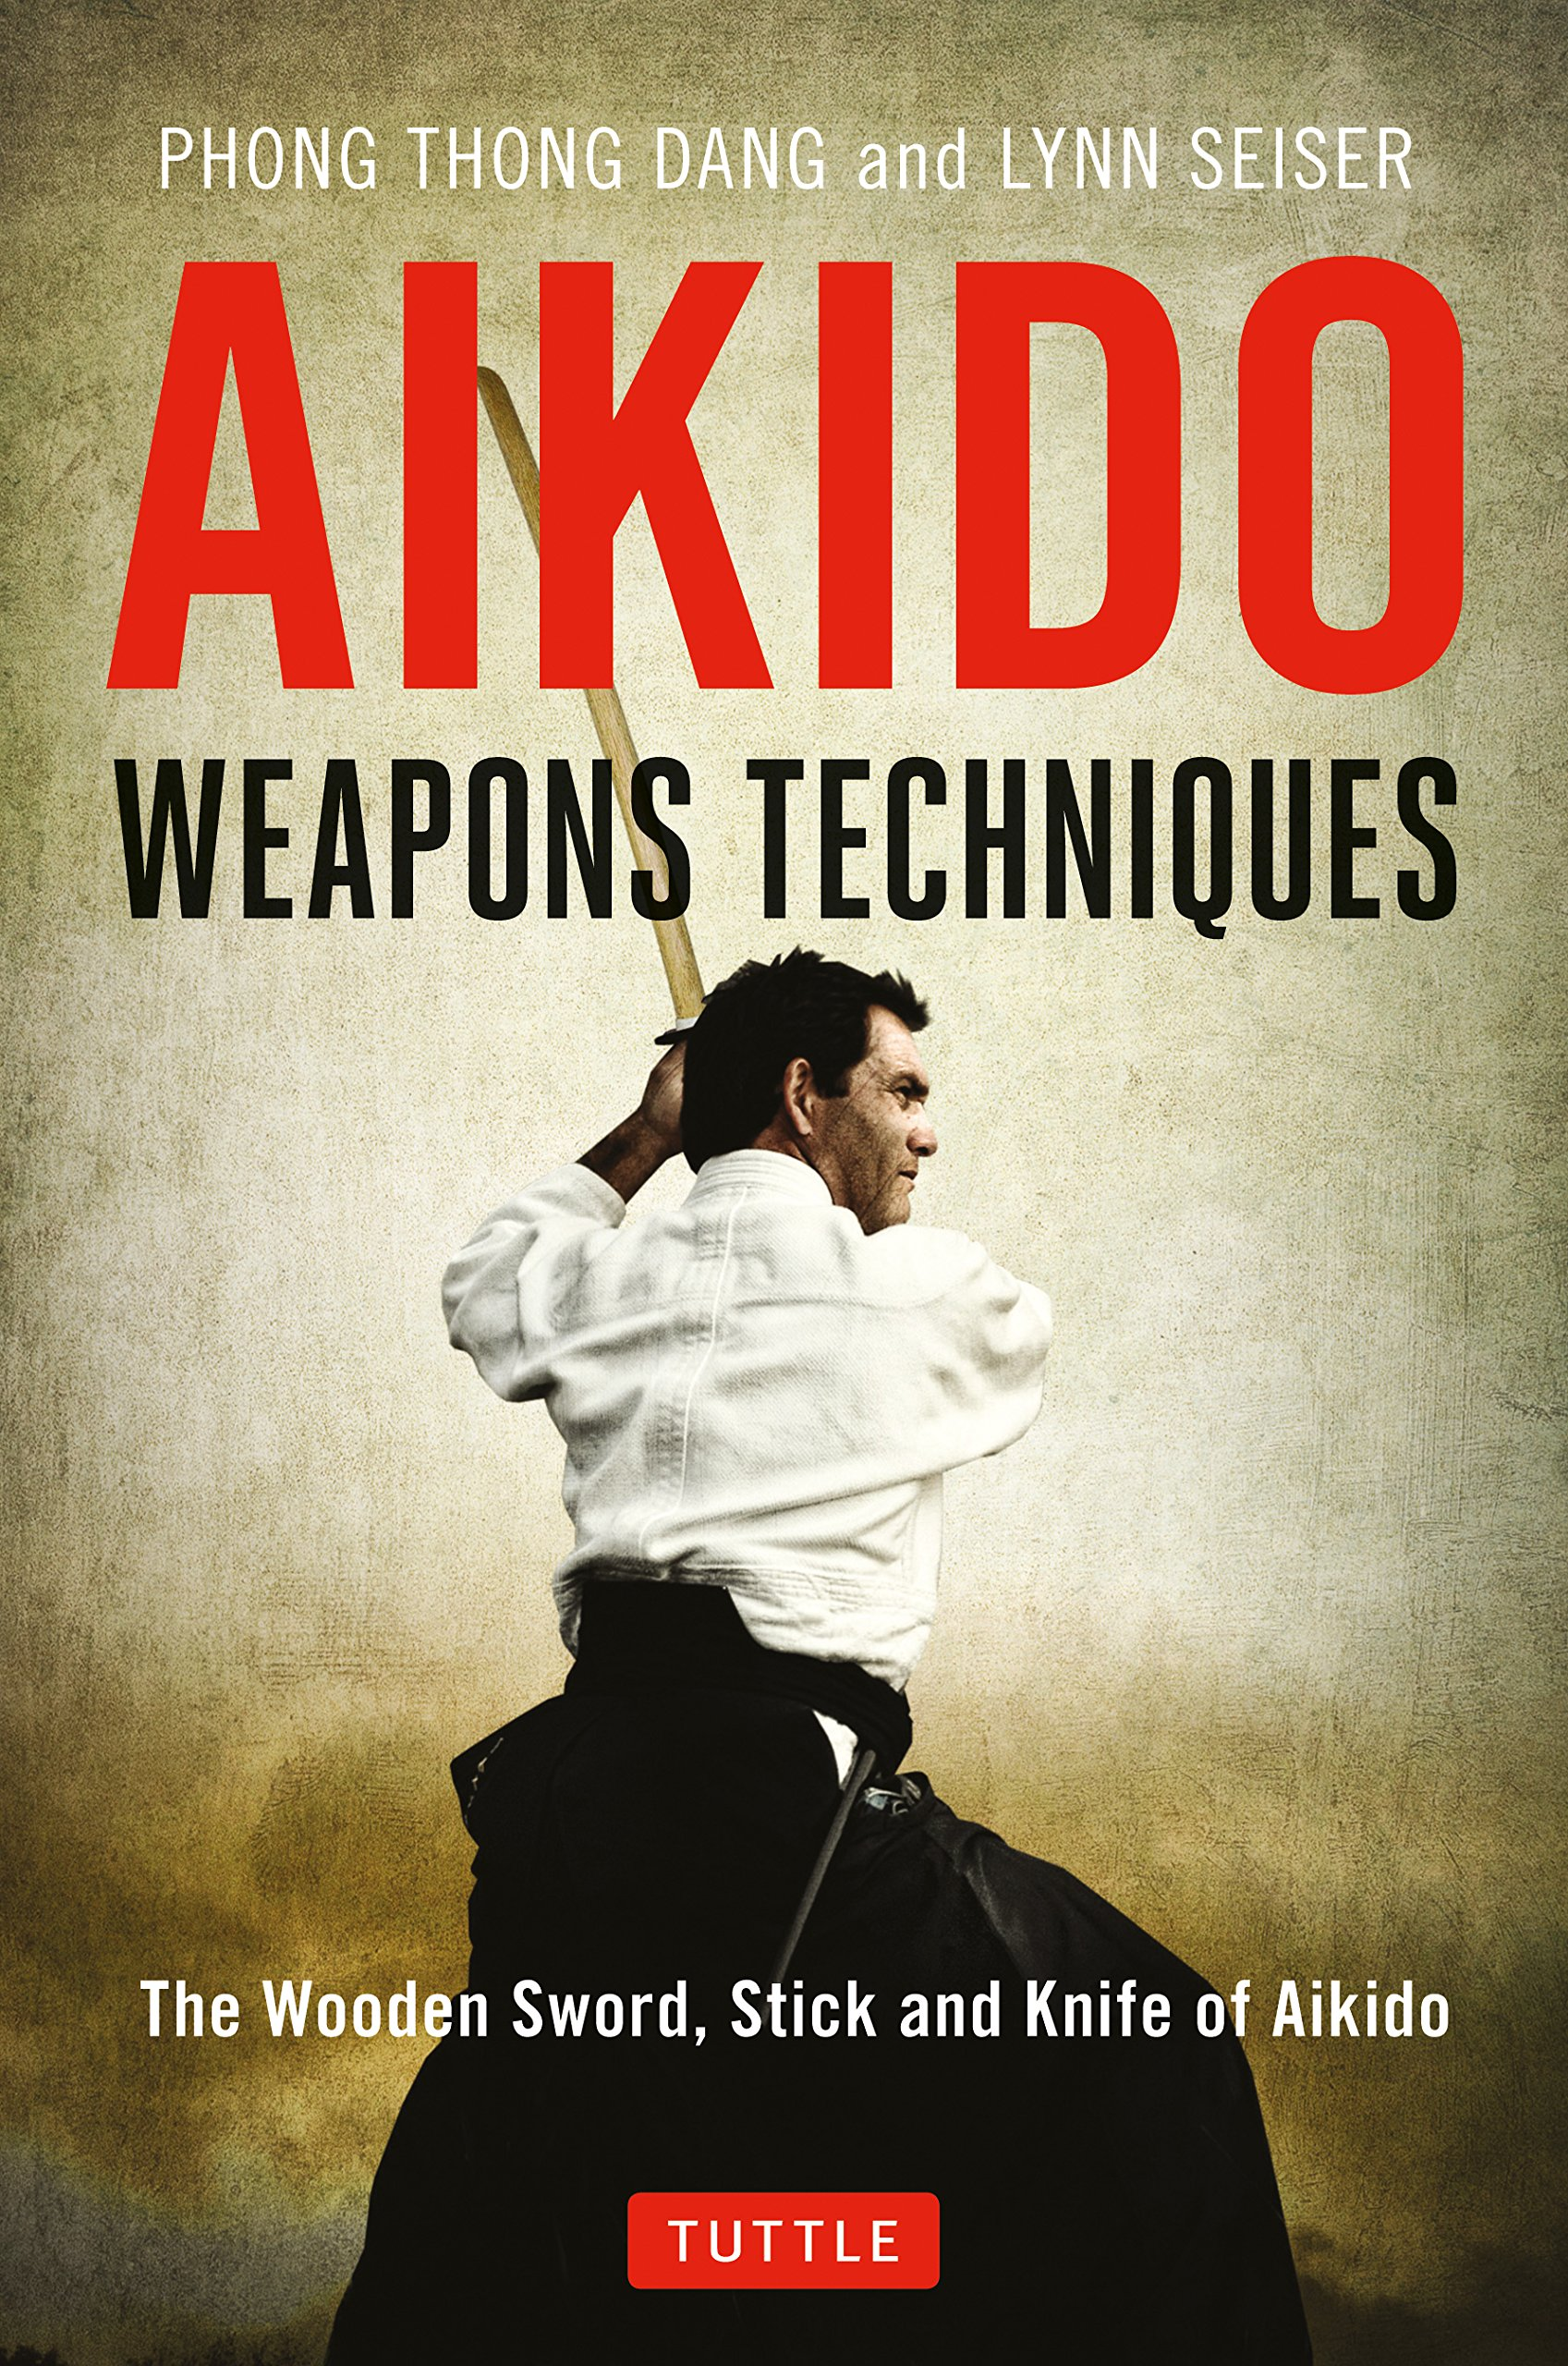 Aikido Weapons Techniques: The Wooden Sword, Stick and Knife of Aikido, Dang, Phong Thong; Seiser, Lynn